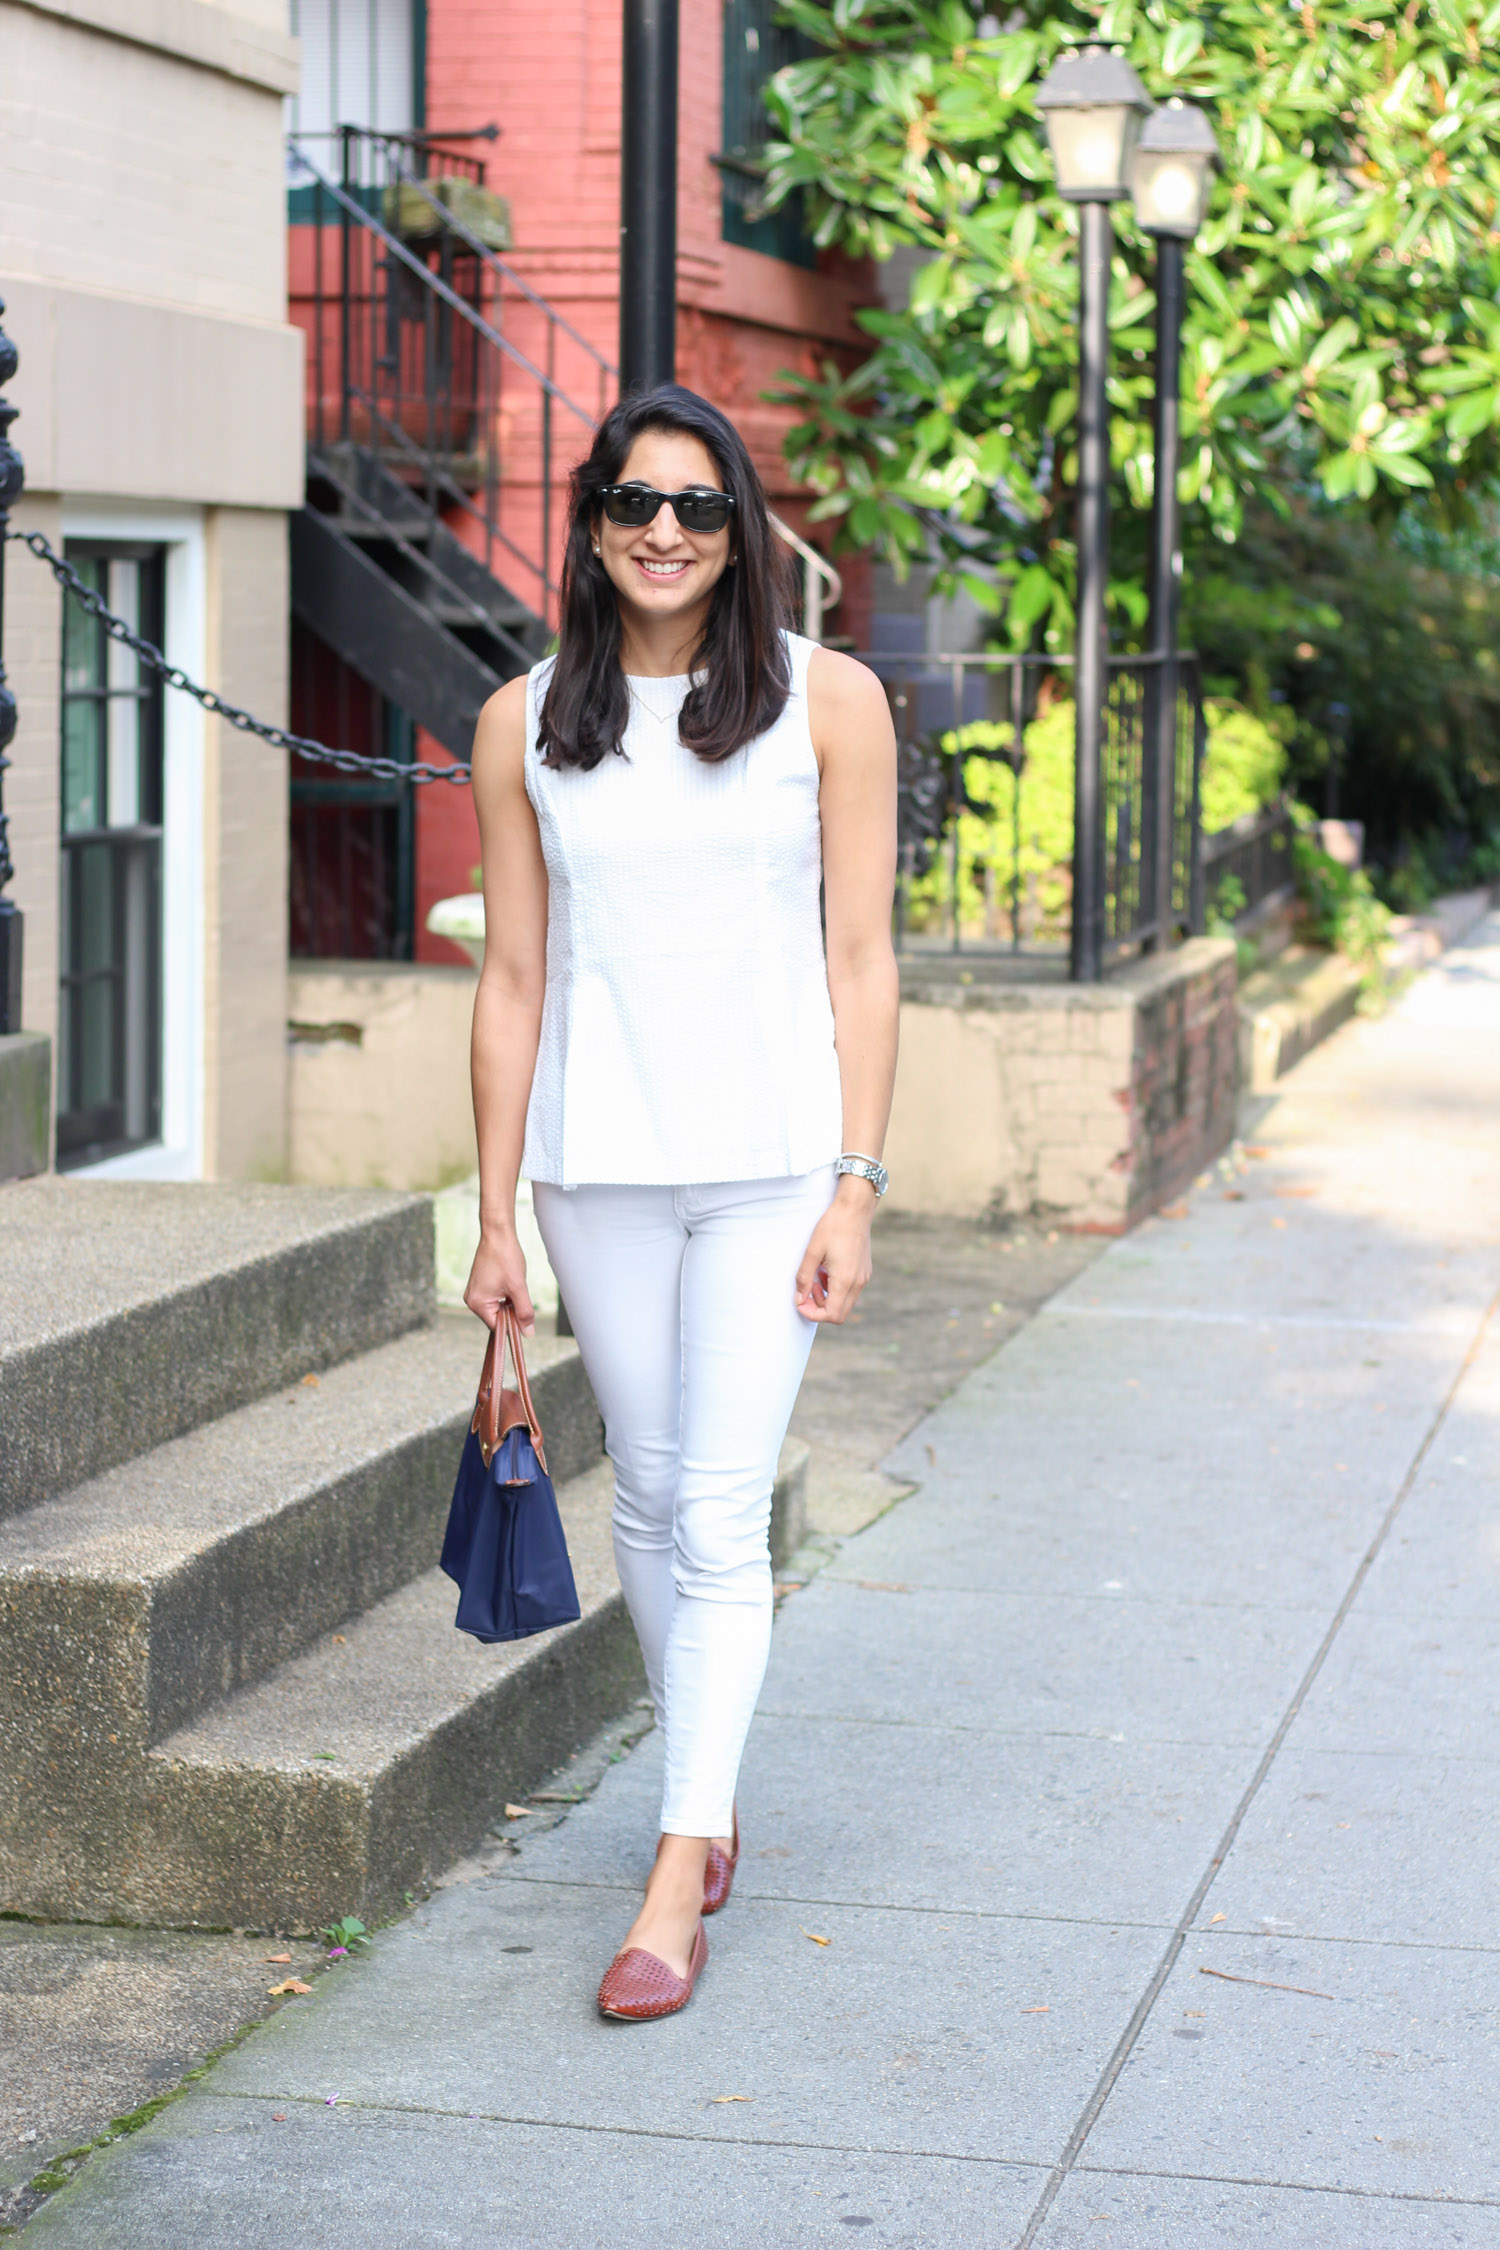 All white summer outfit   Duffield Lane white seersucker top featured by popular DC fashion blogger, Monica Dutia